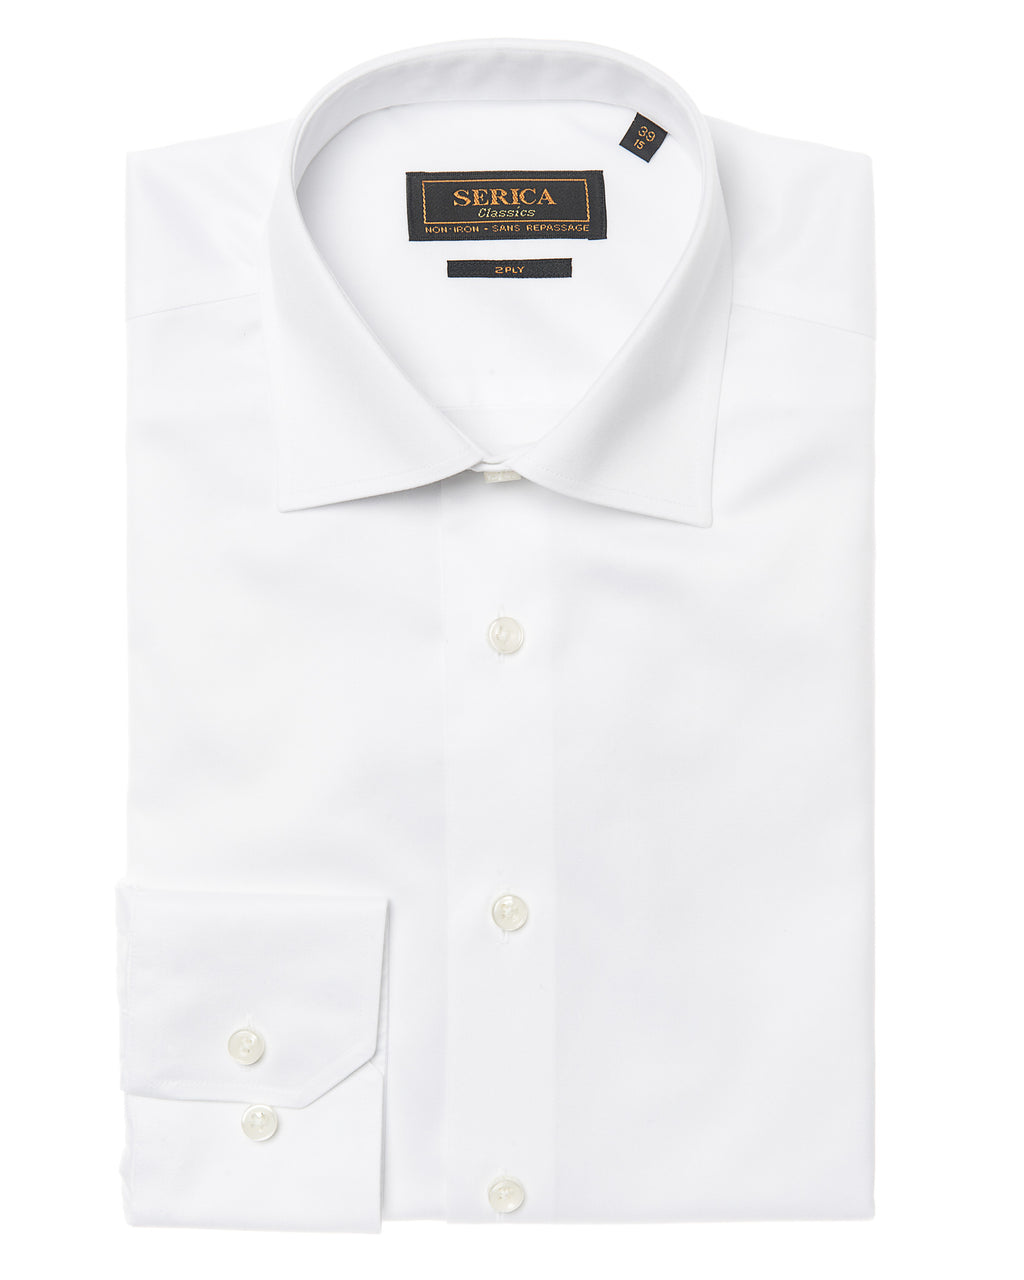 non iron White dress shirt with button cuffs. Wrinkle Free.